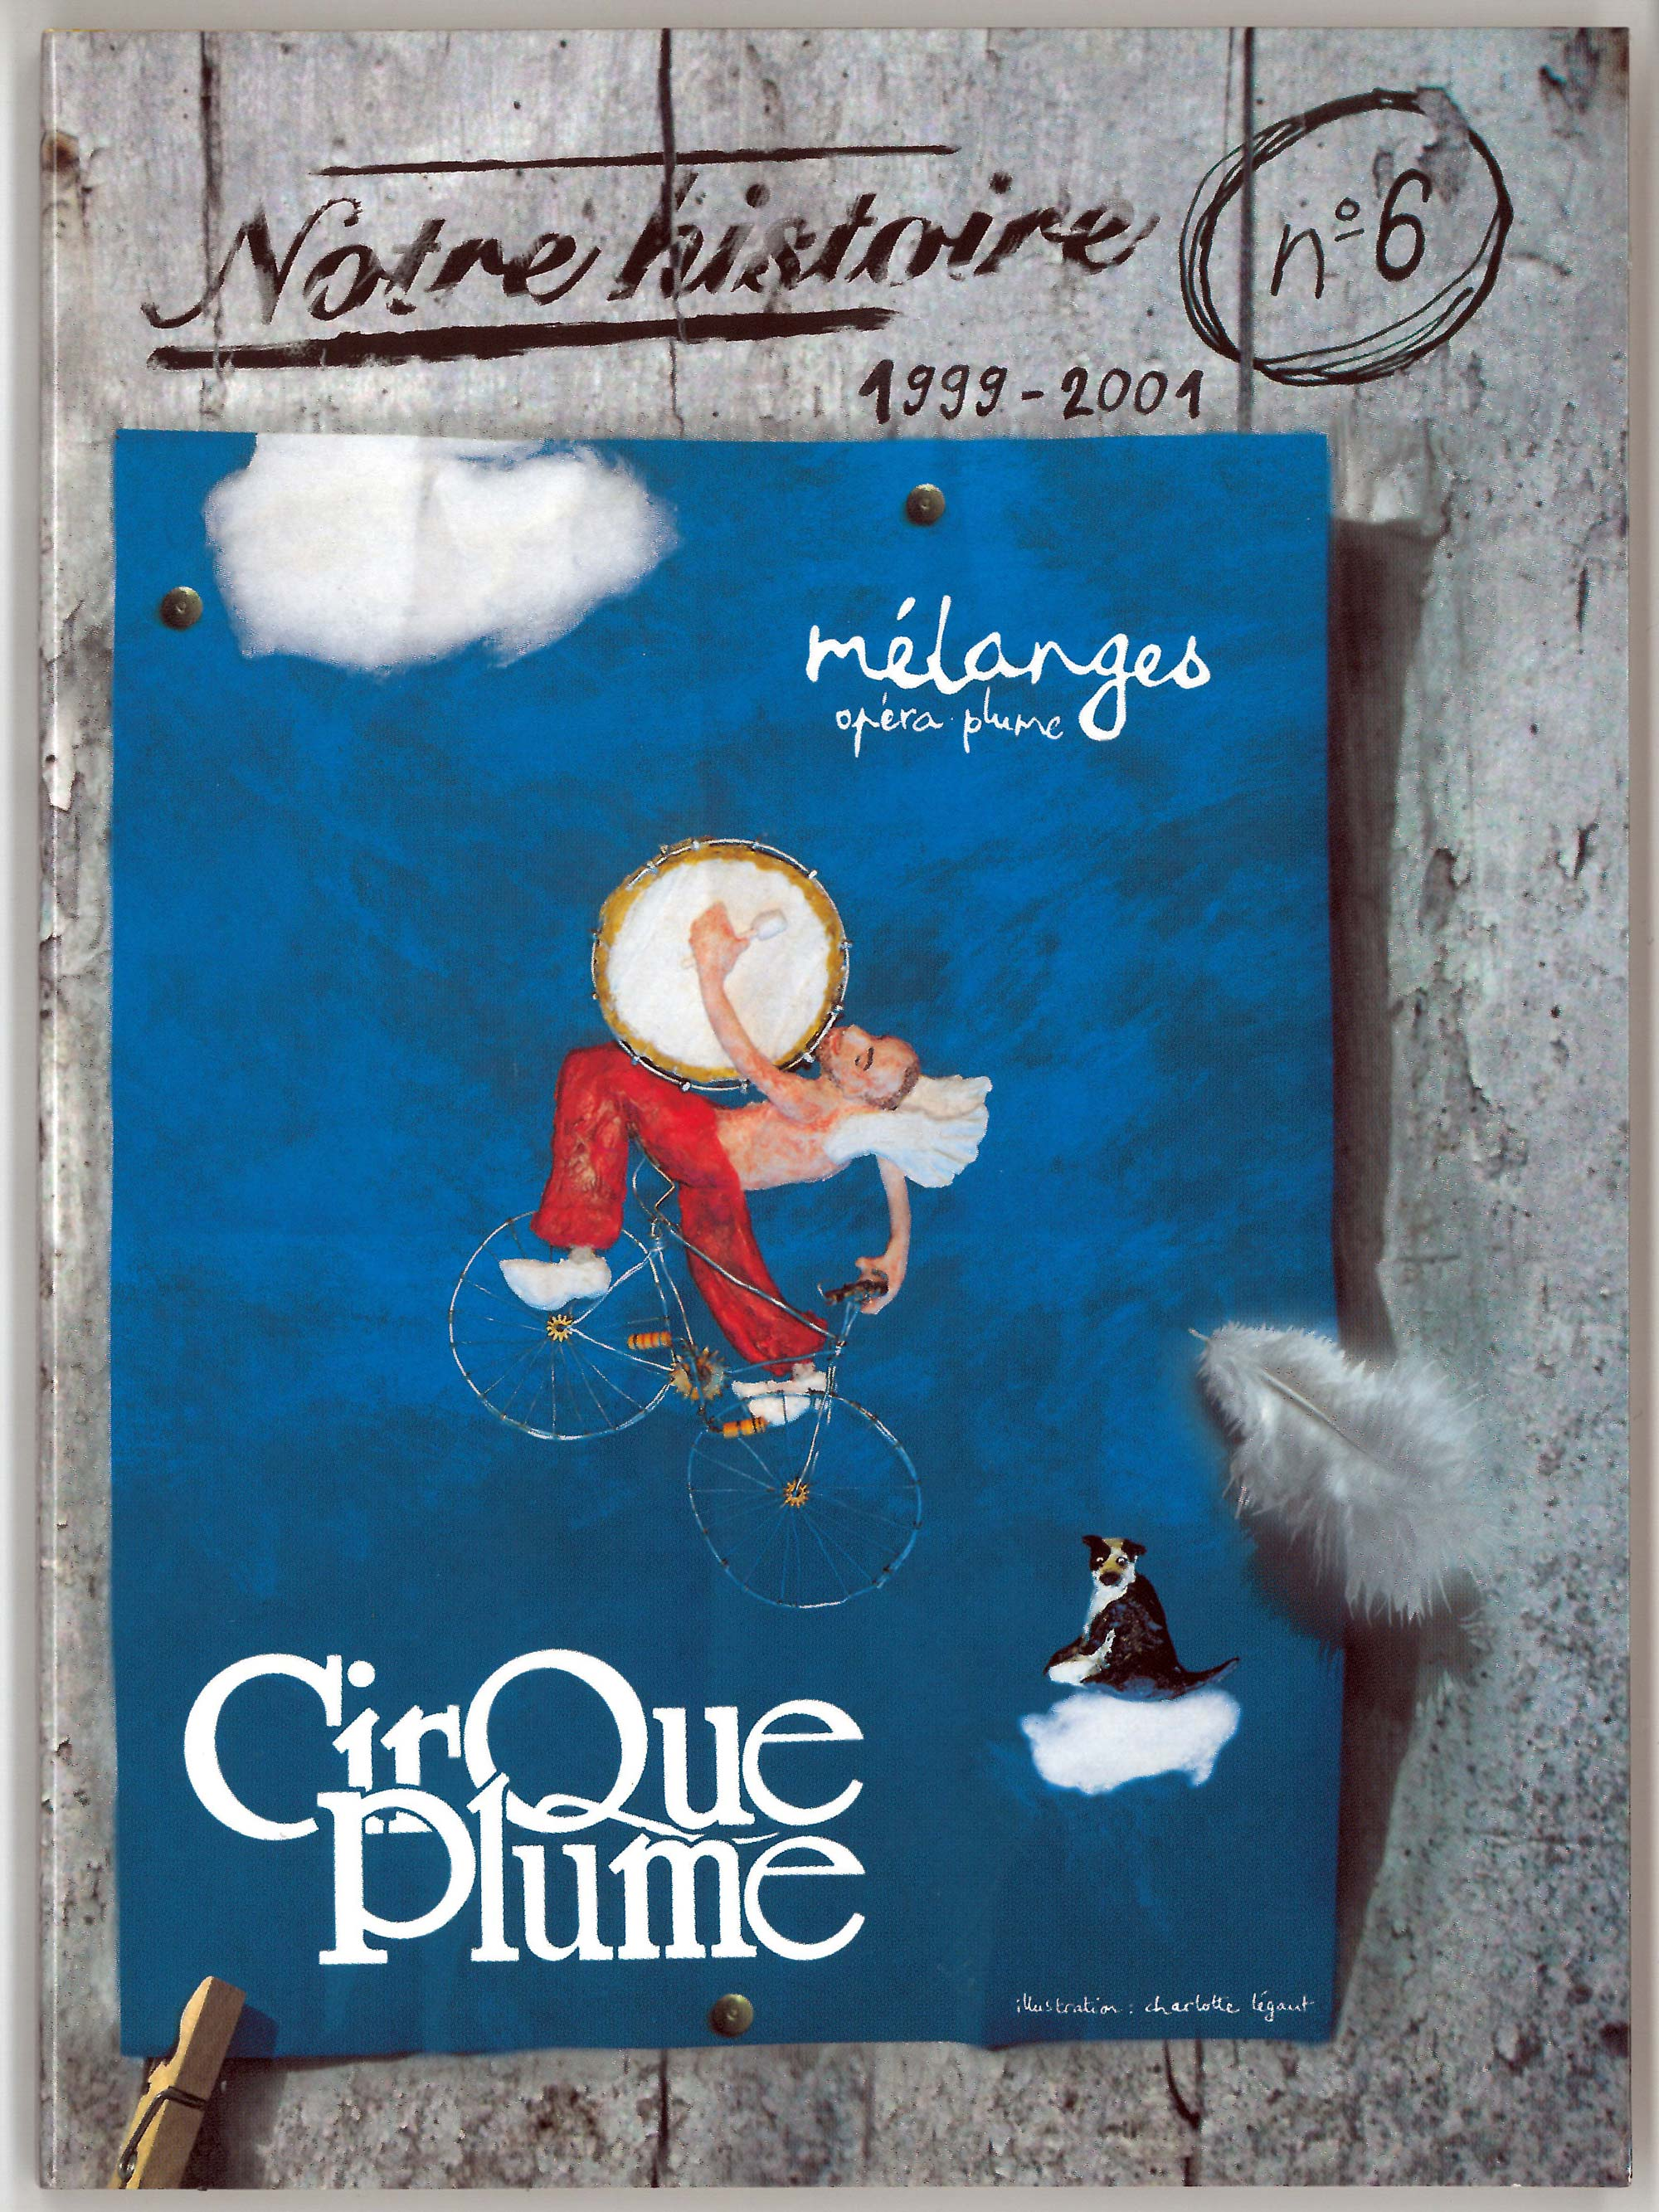 Front cover - DVD n°6 Mélange (opéra plume)